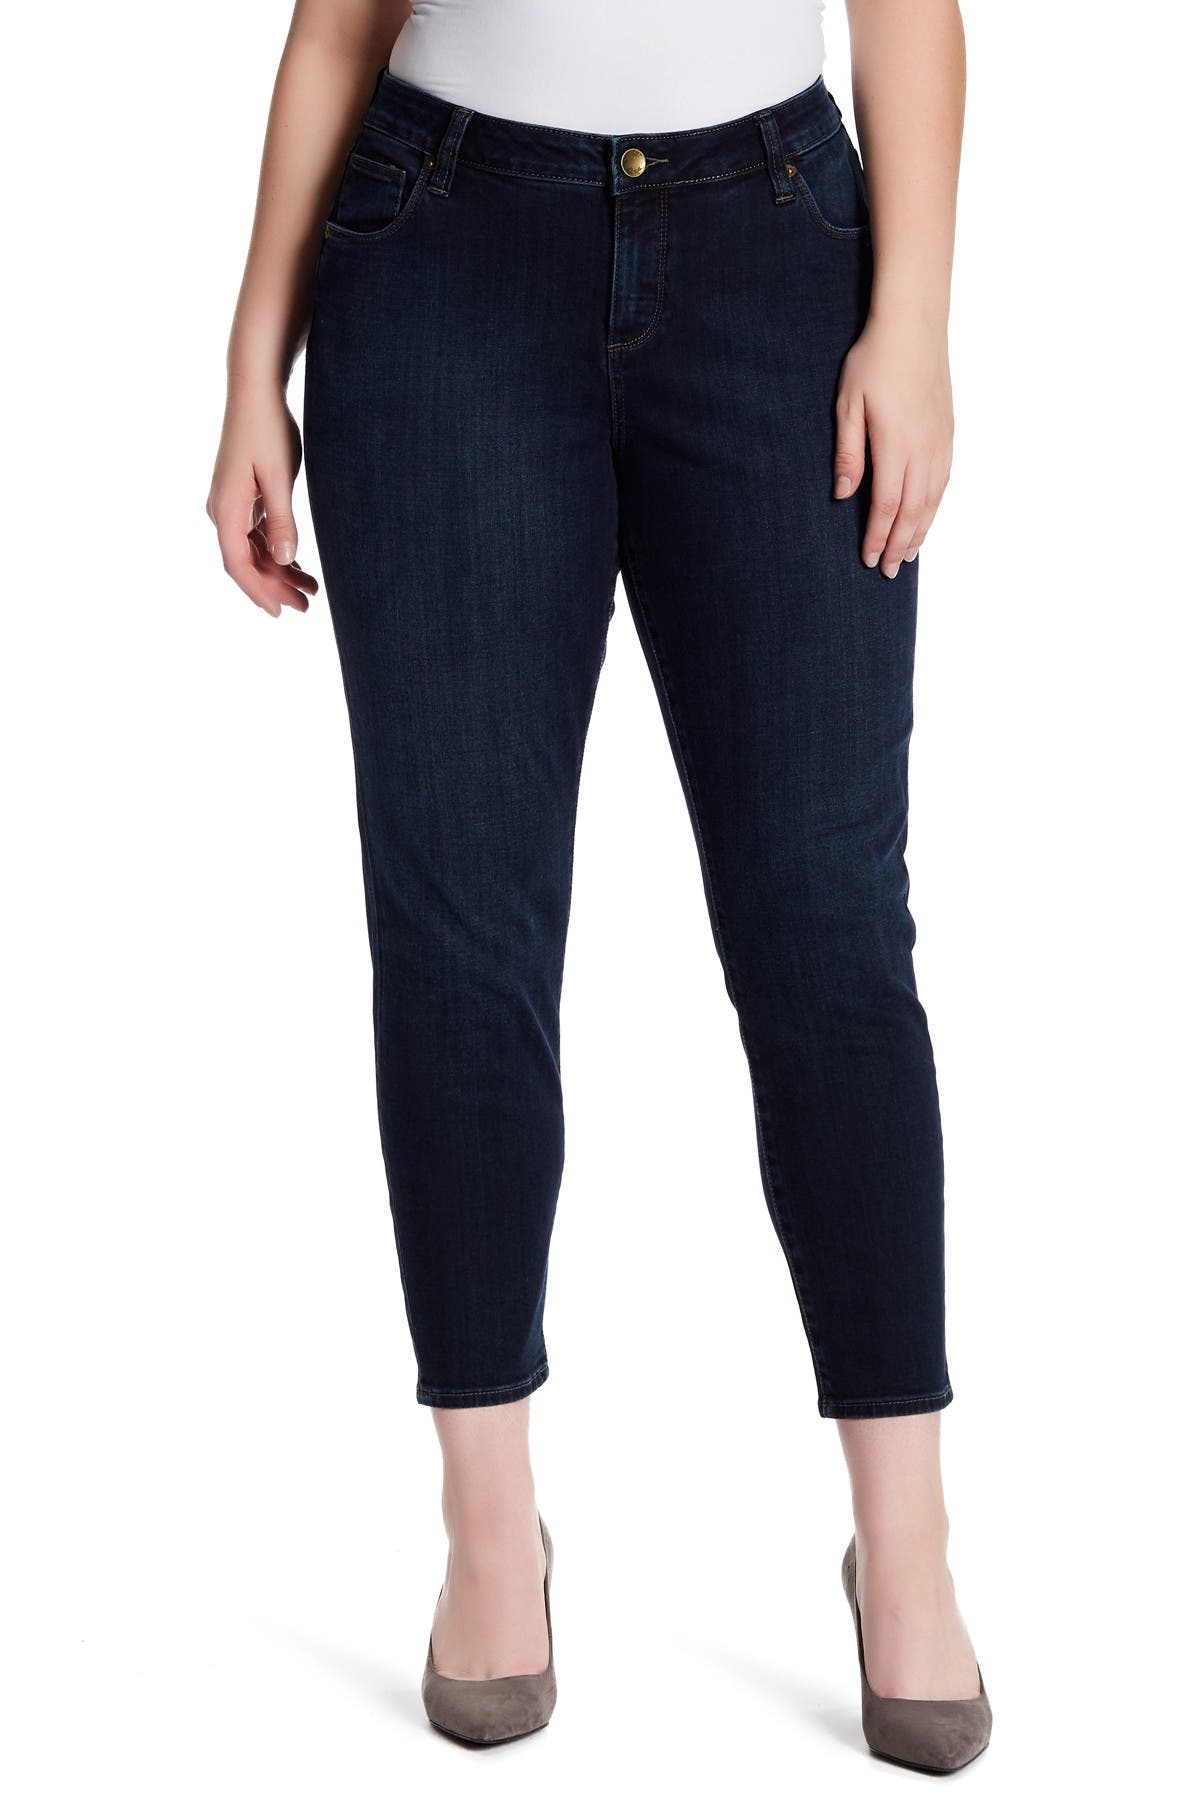 Image of KUT from the Kloth Ankle Straight Leg Jeans